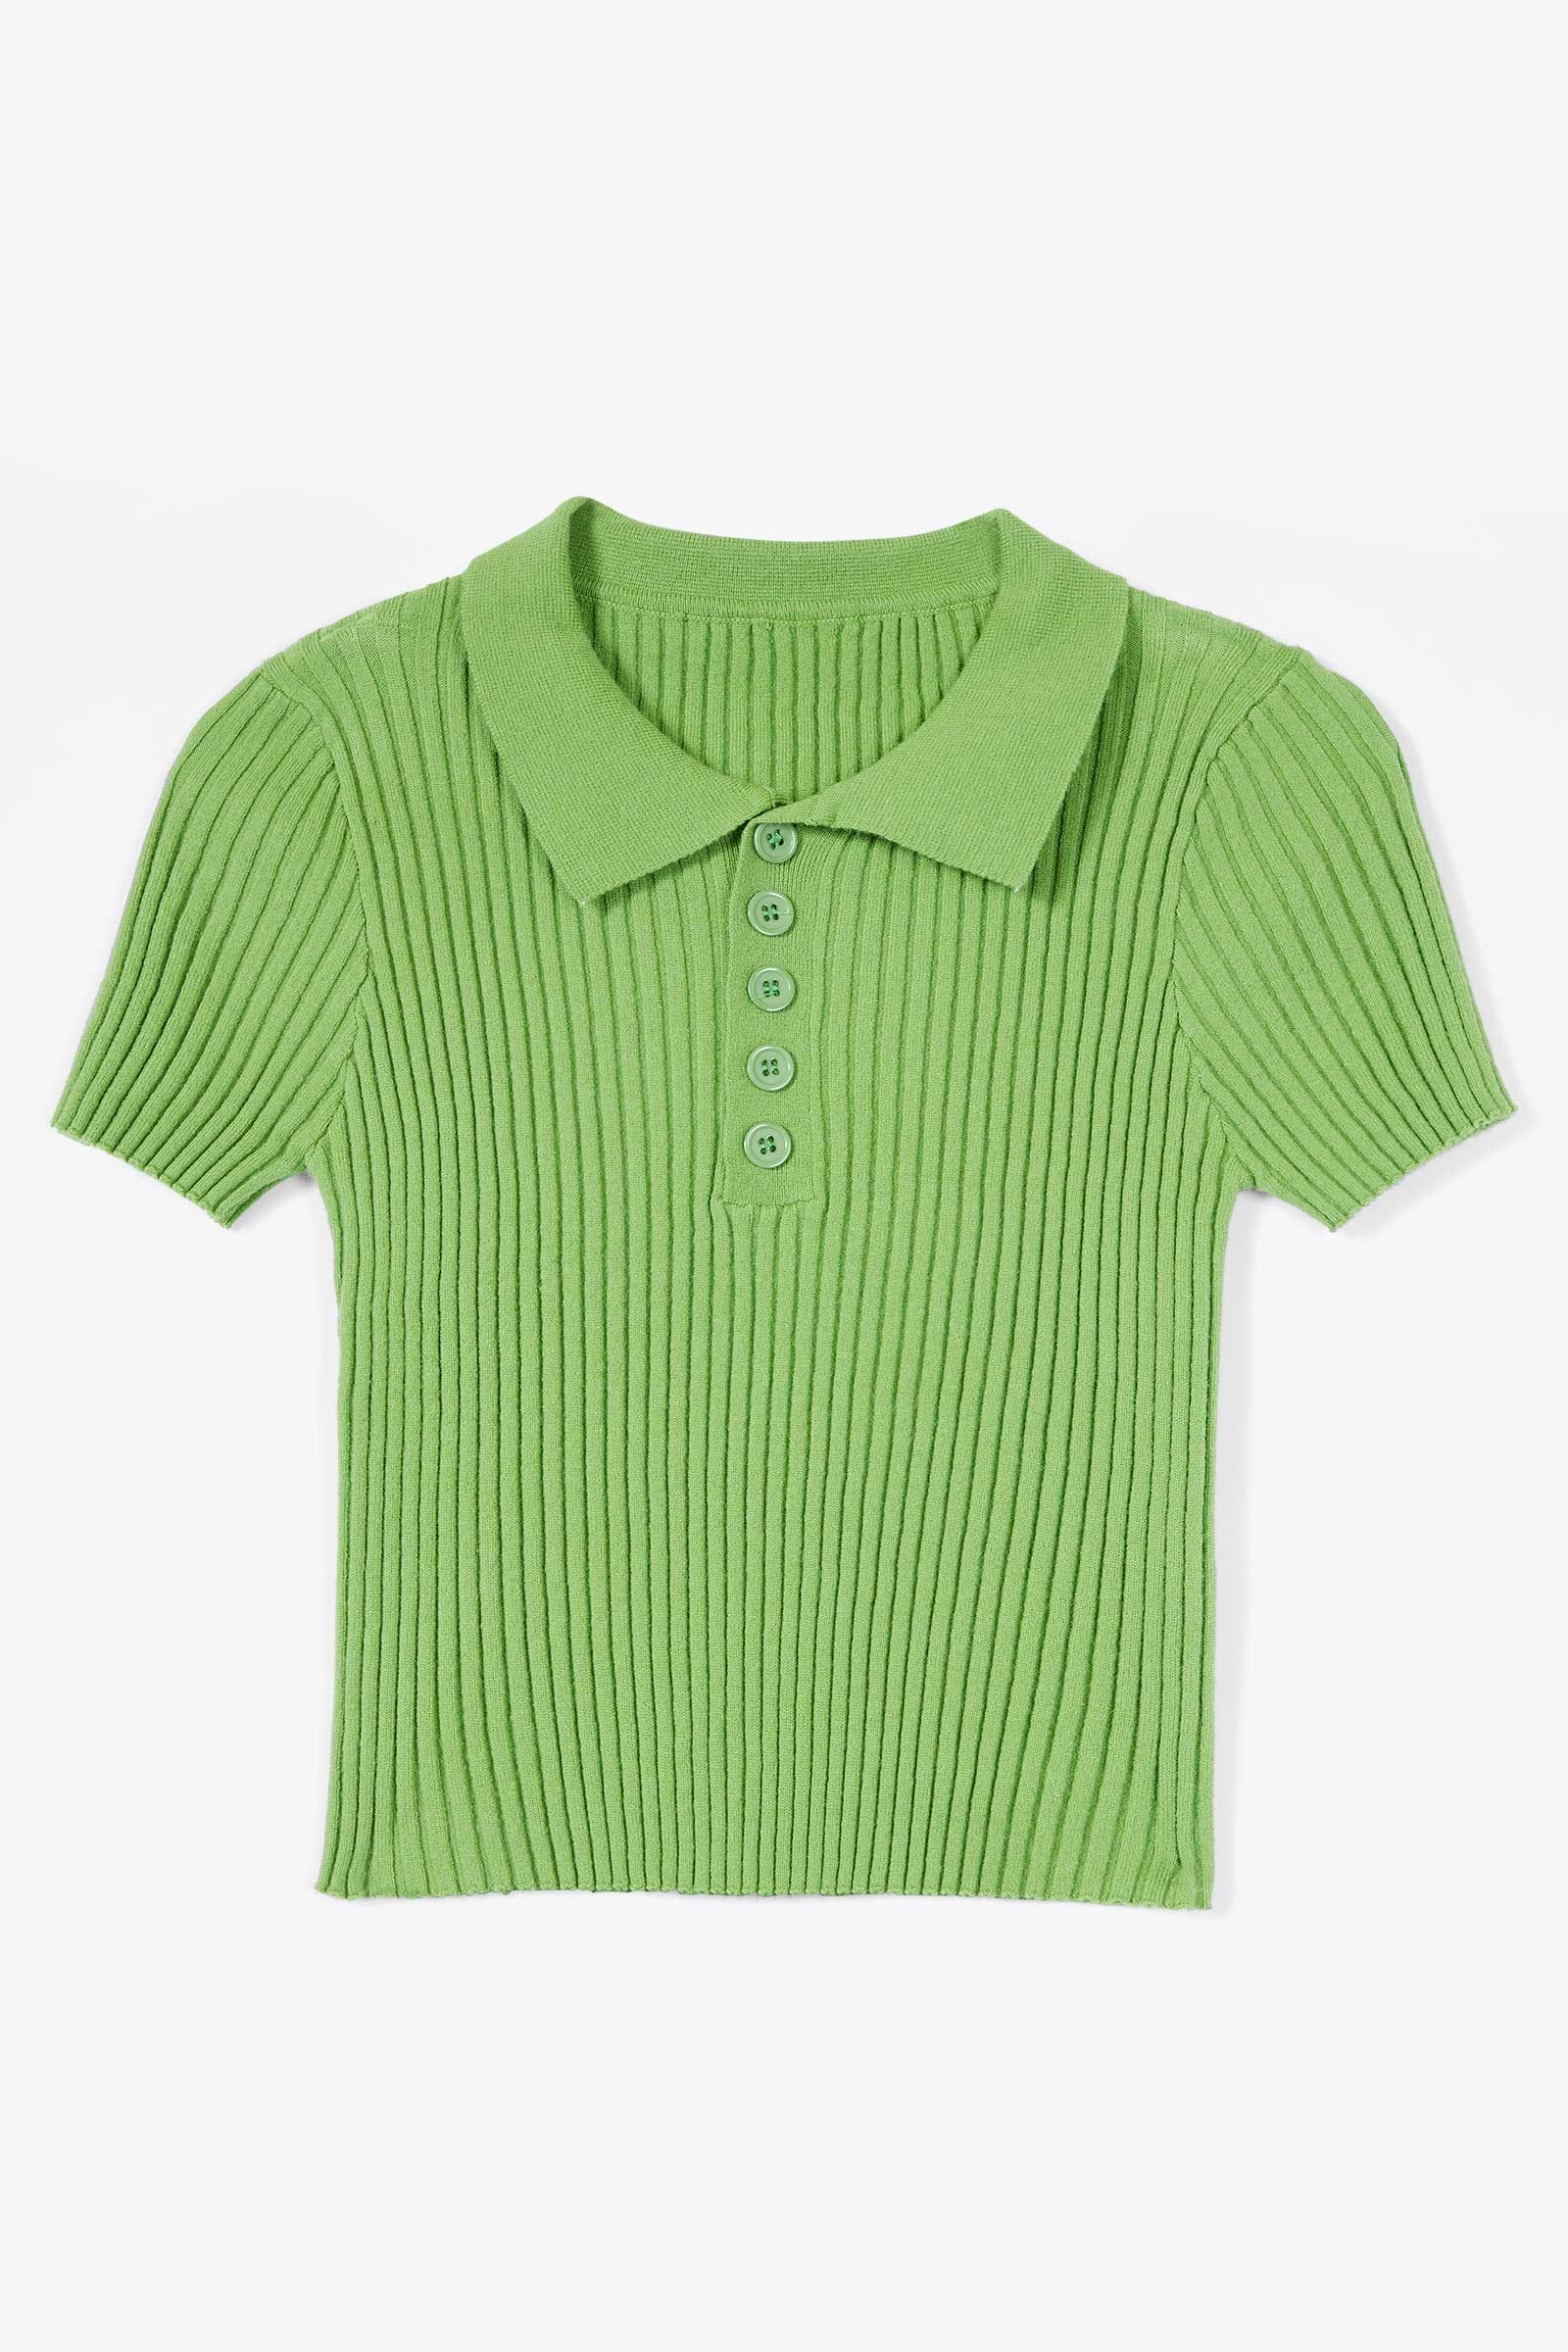 Skye Green Ribbed Top